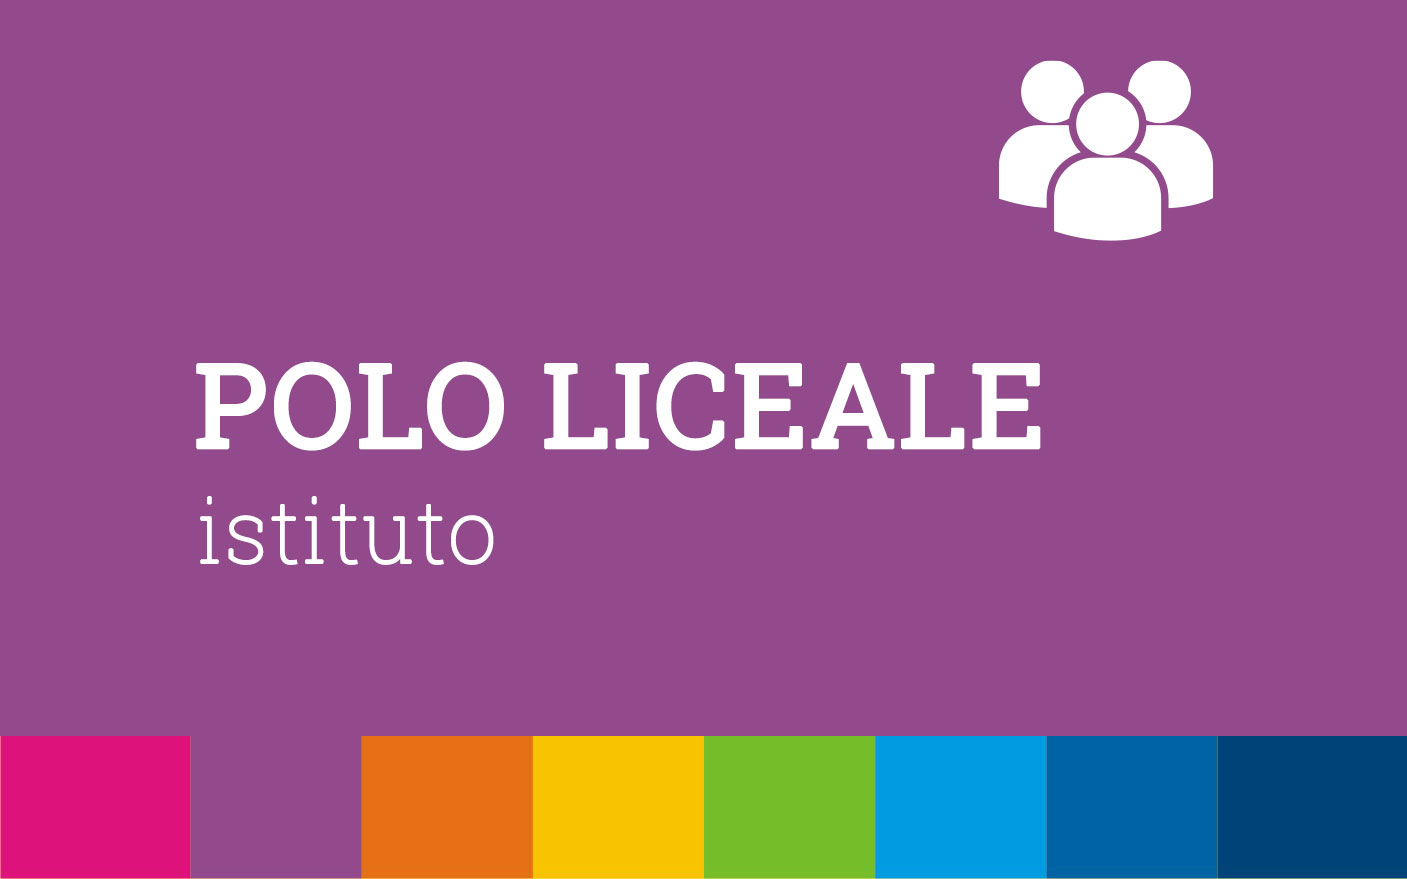 Polo Liceale Istituto